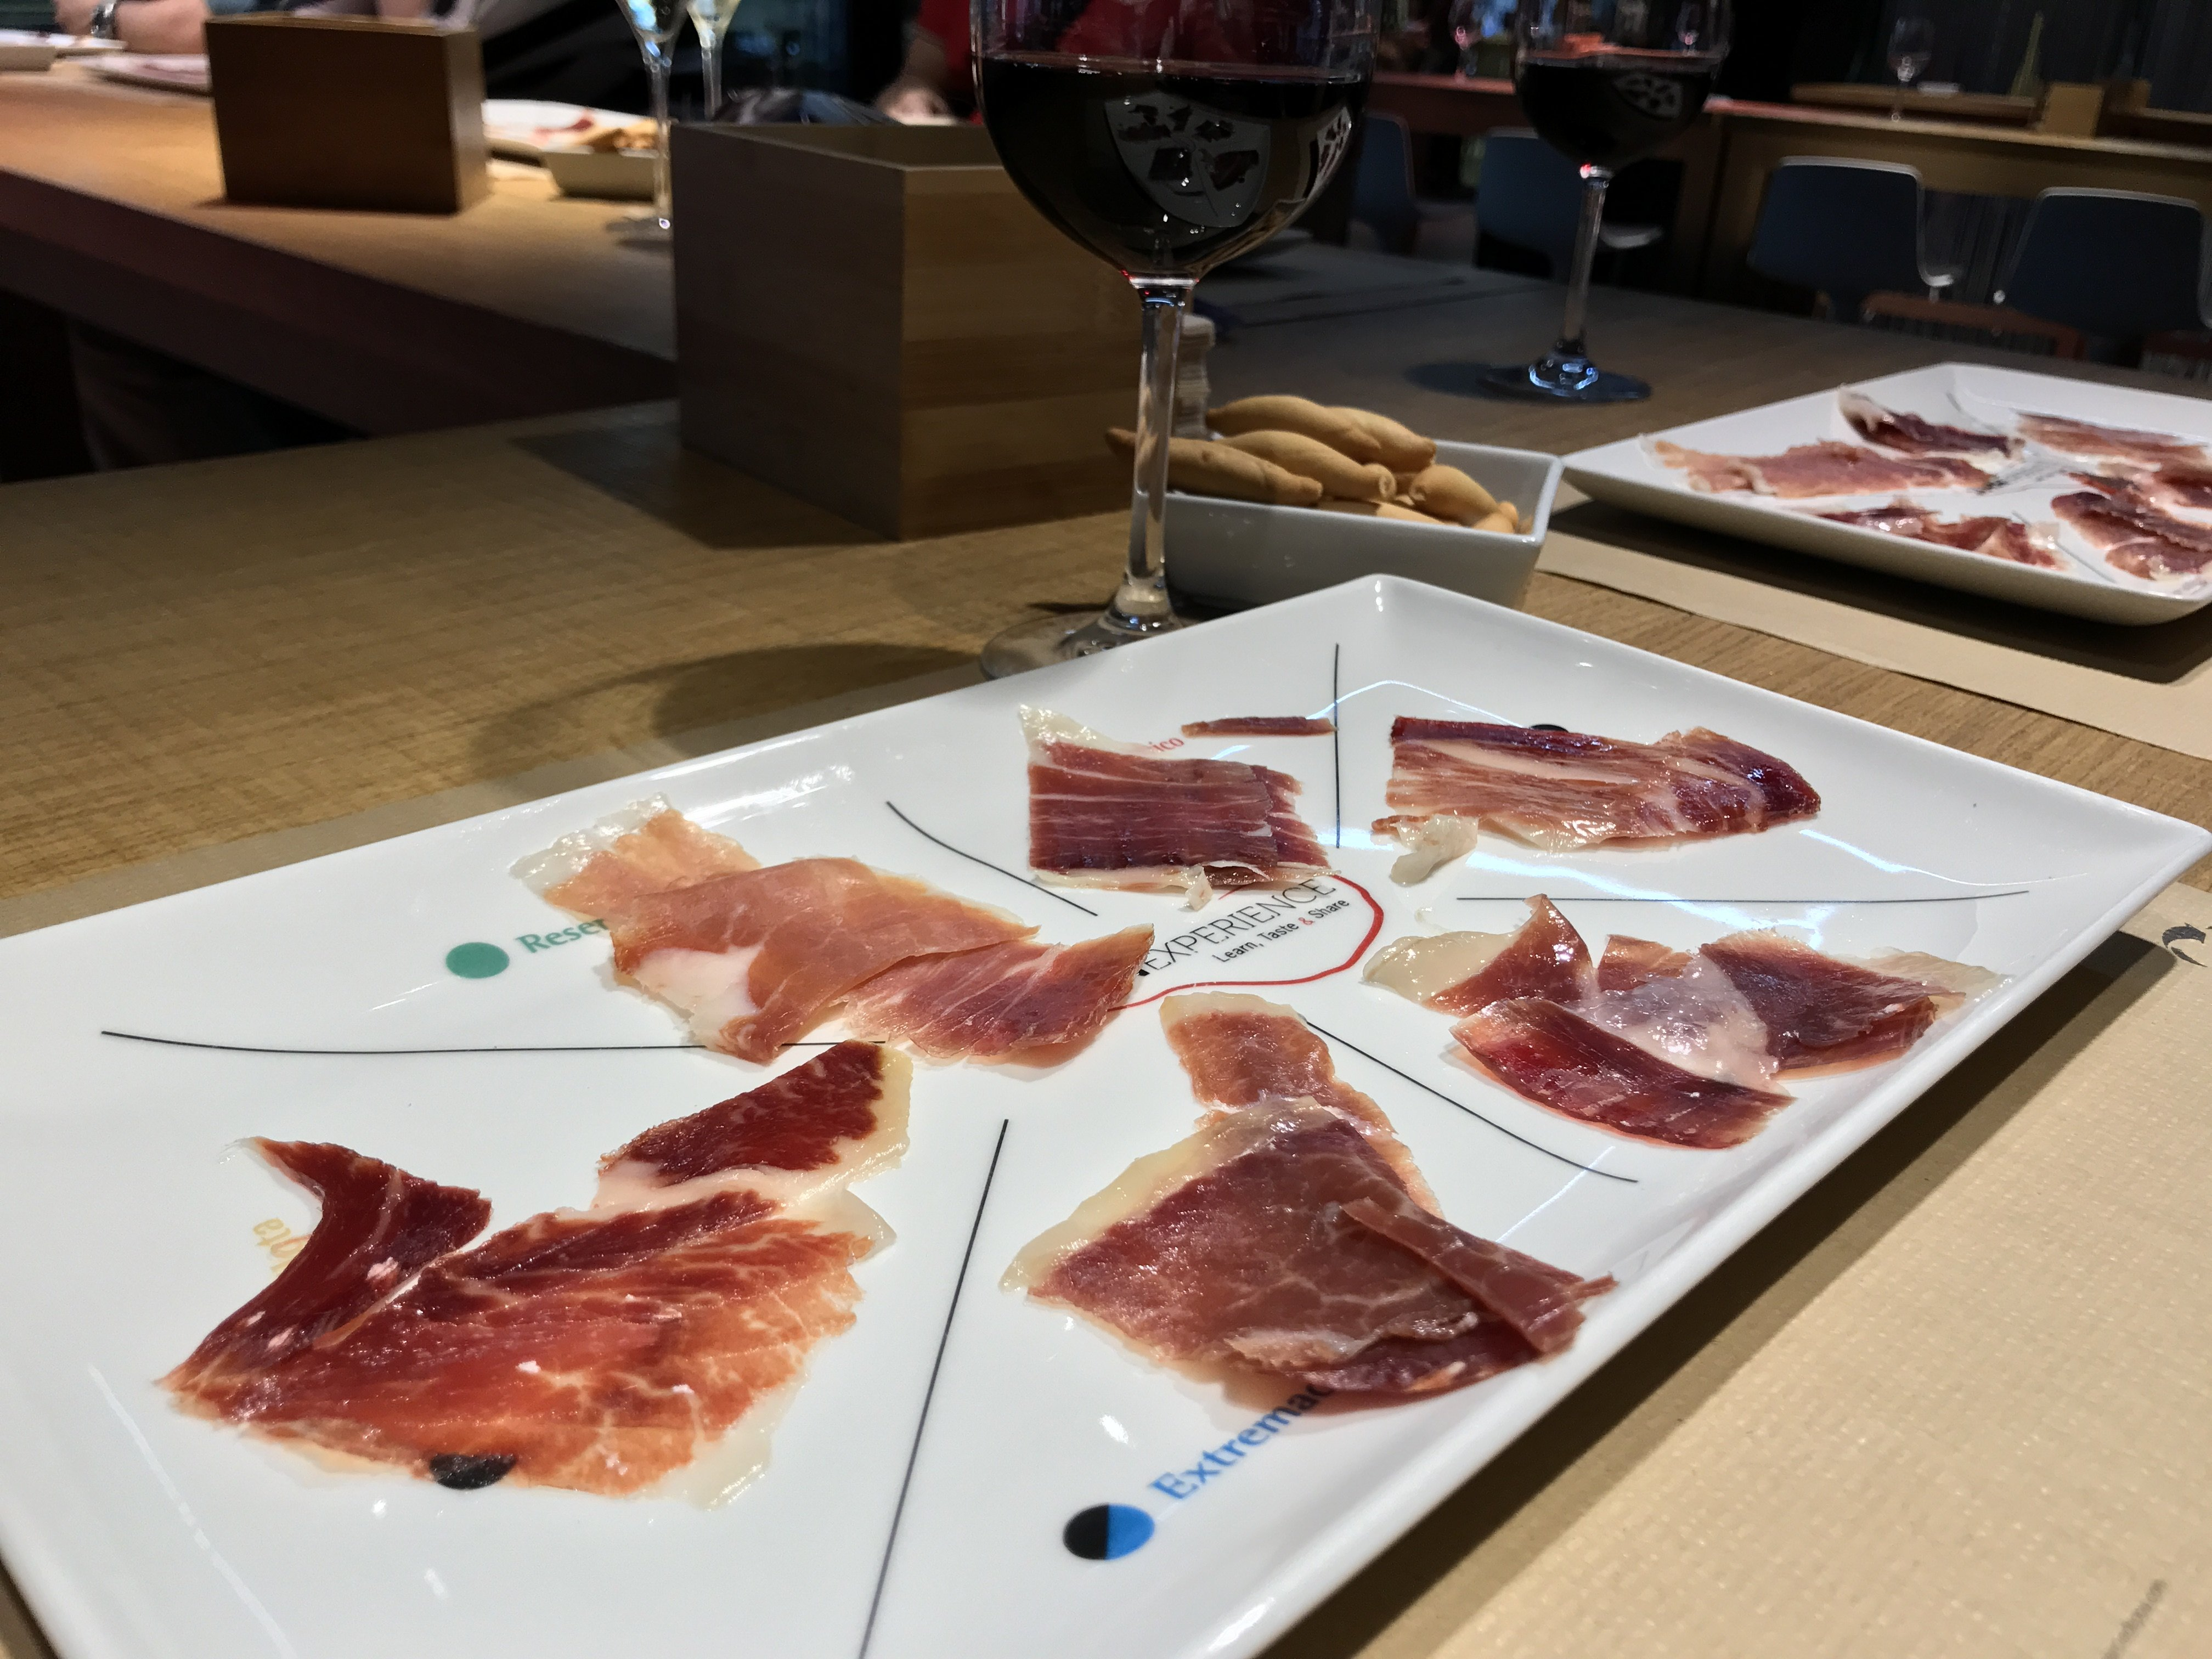 LGBT travel guide Barcelona - Jamon experience